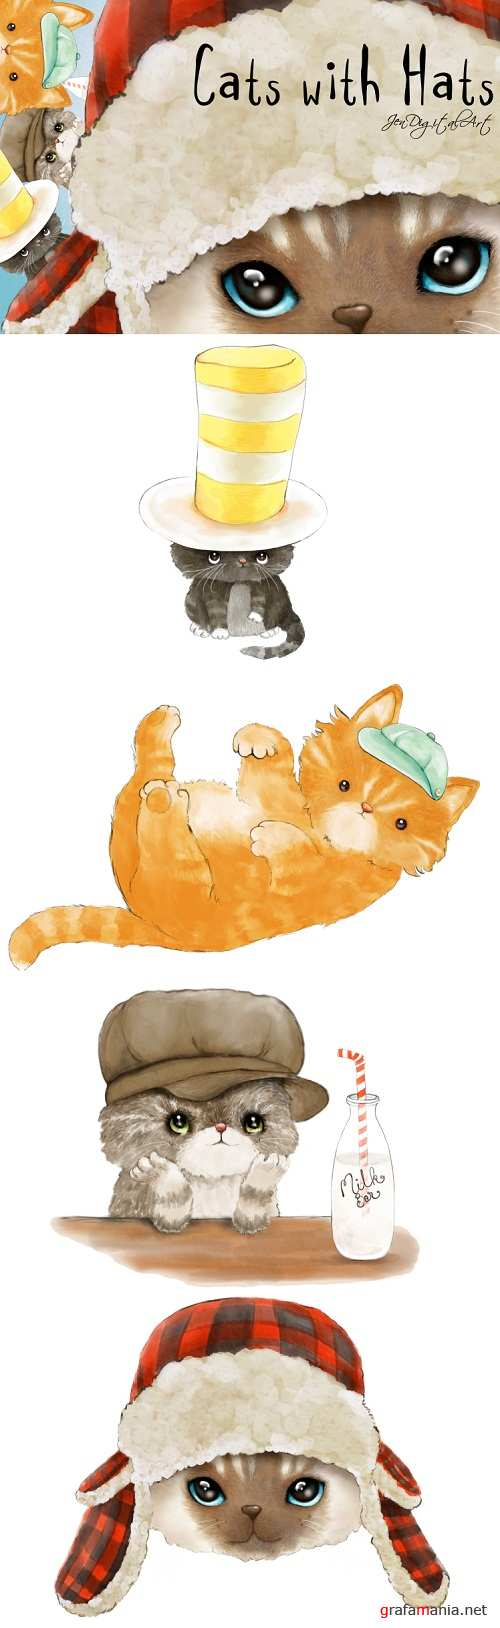 Cats with Hats Clip Art Illustrations - 184989